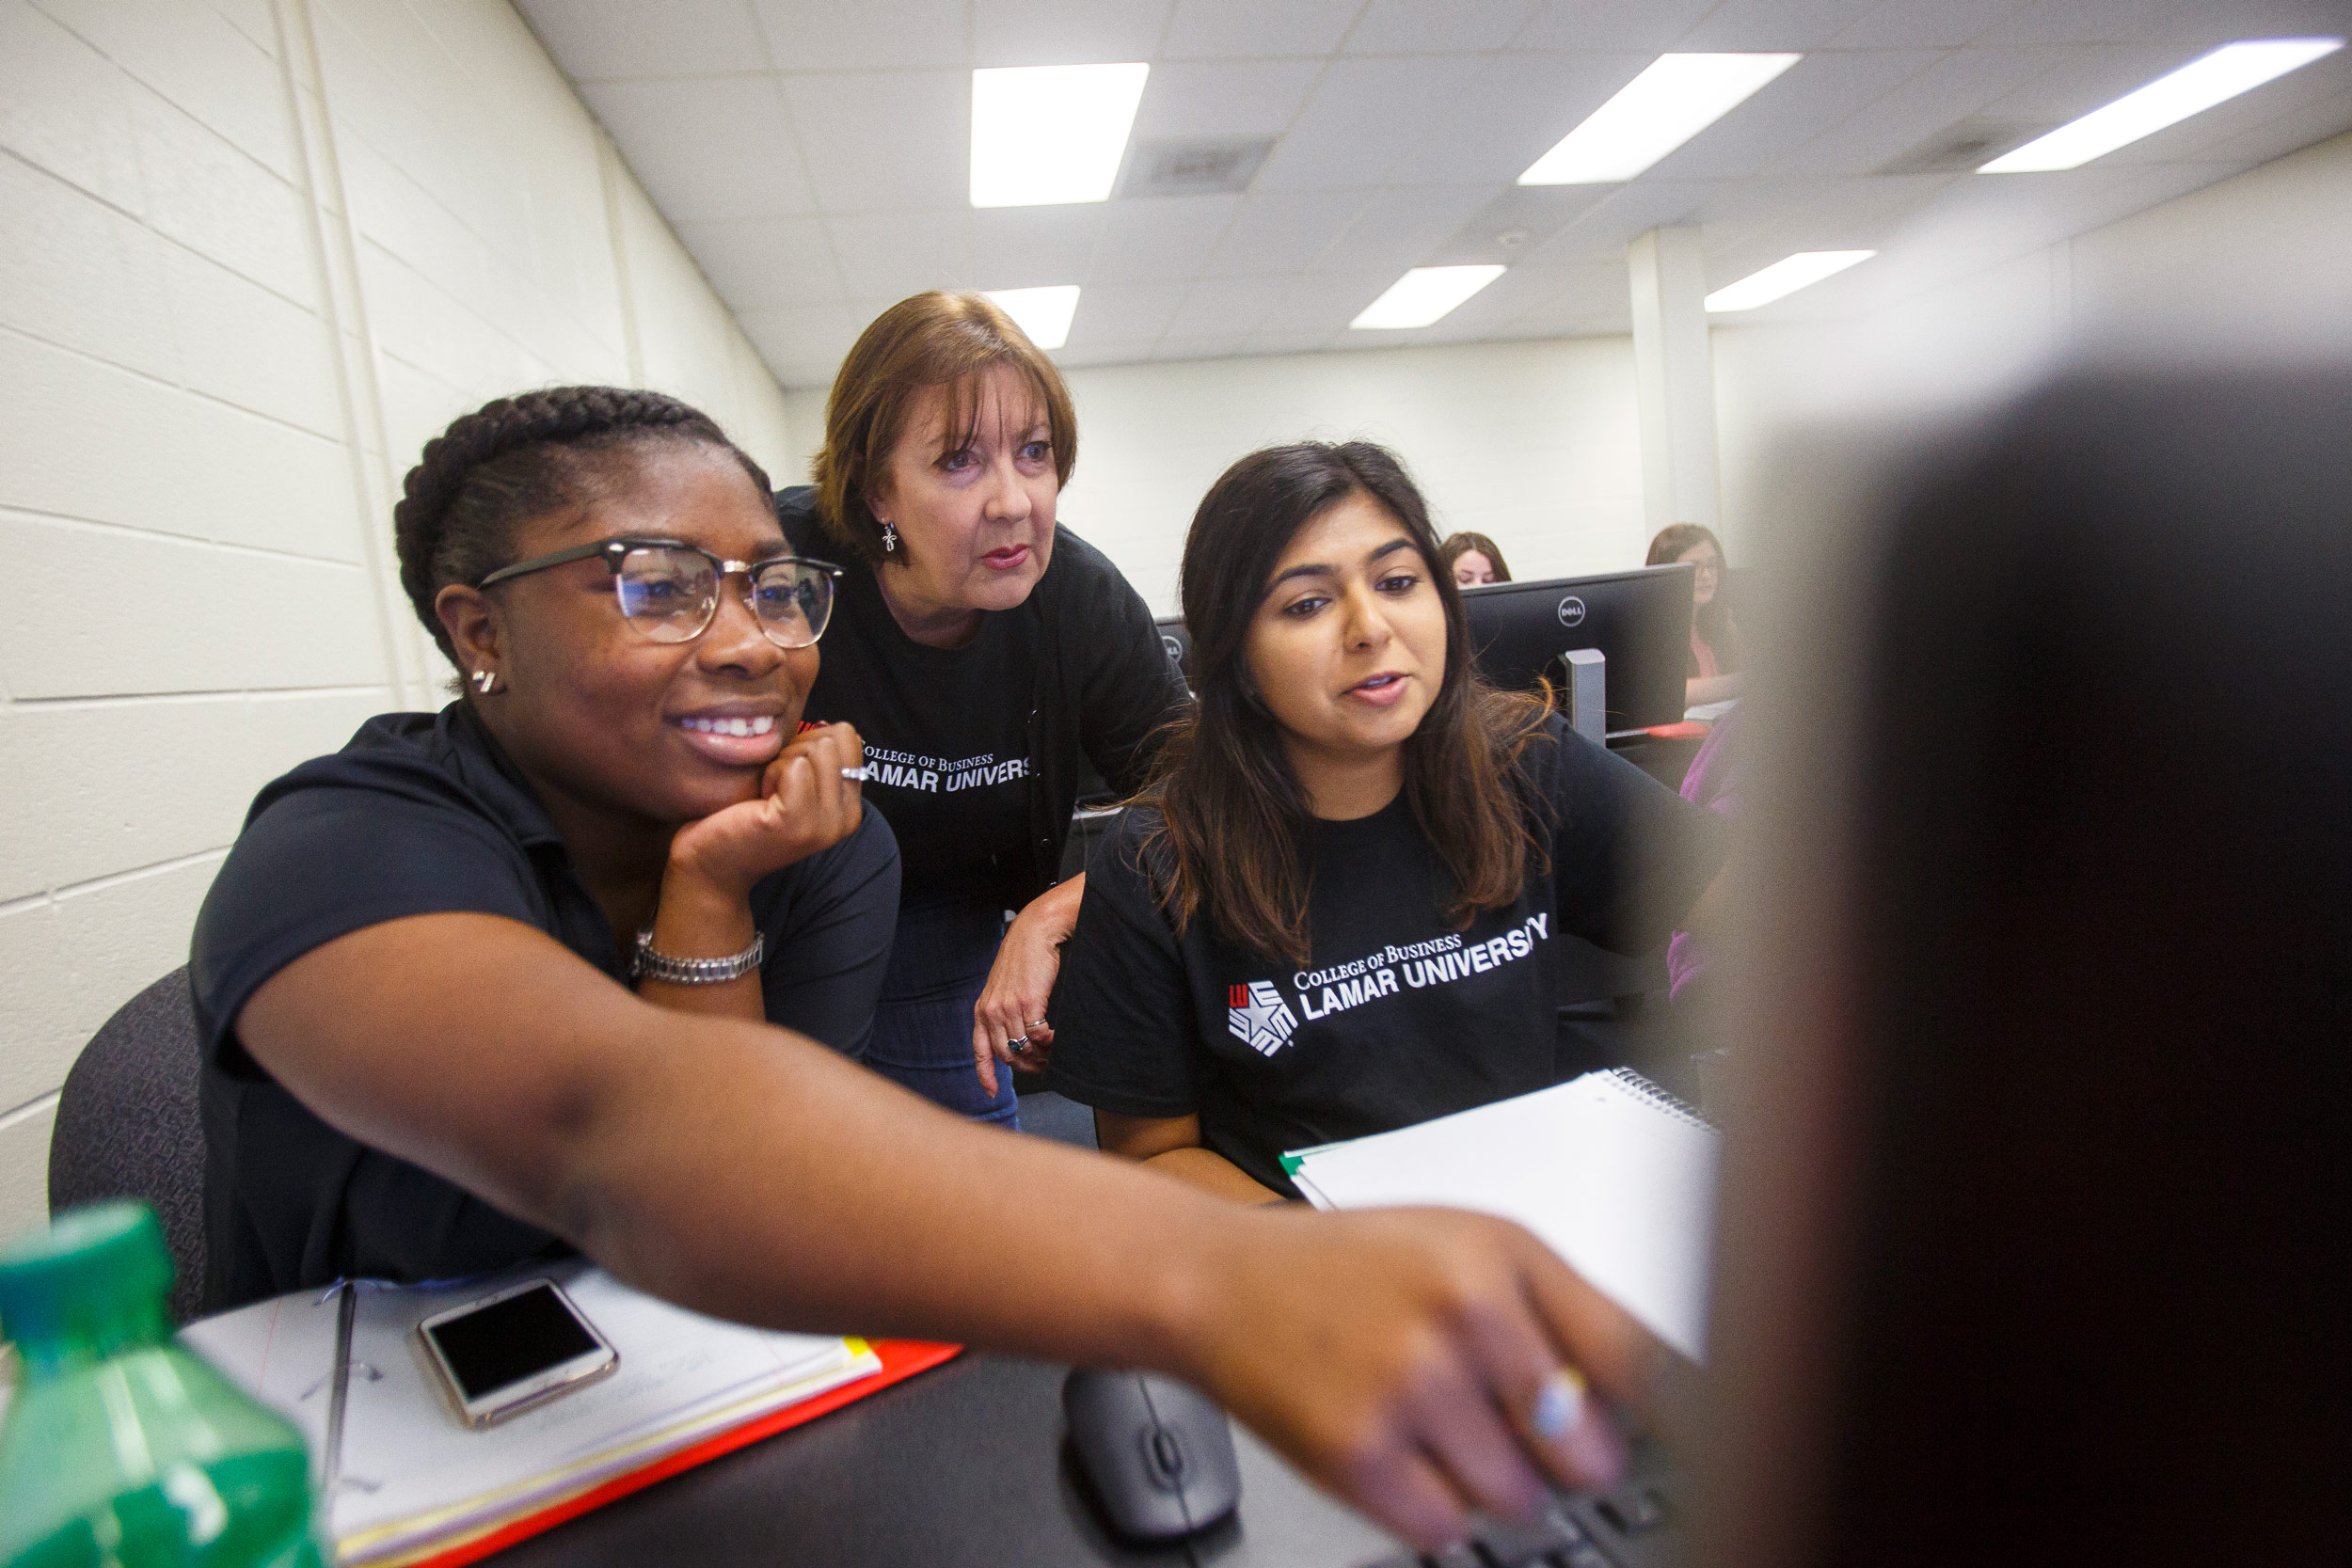 College of Business Students with professor working on a computer